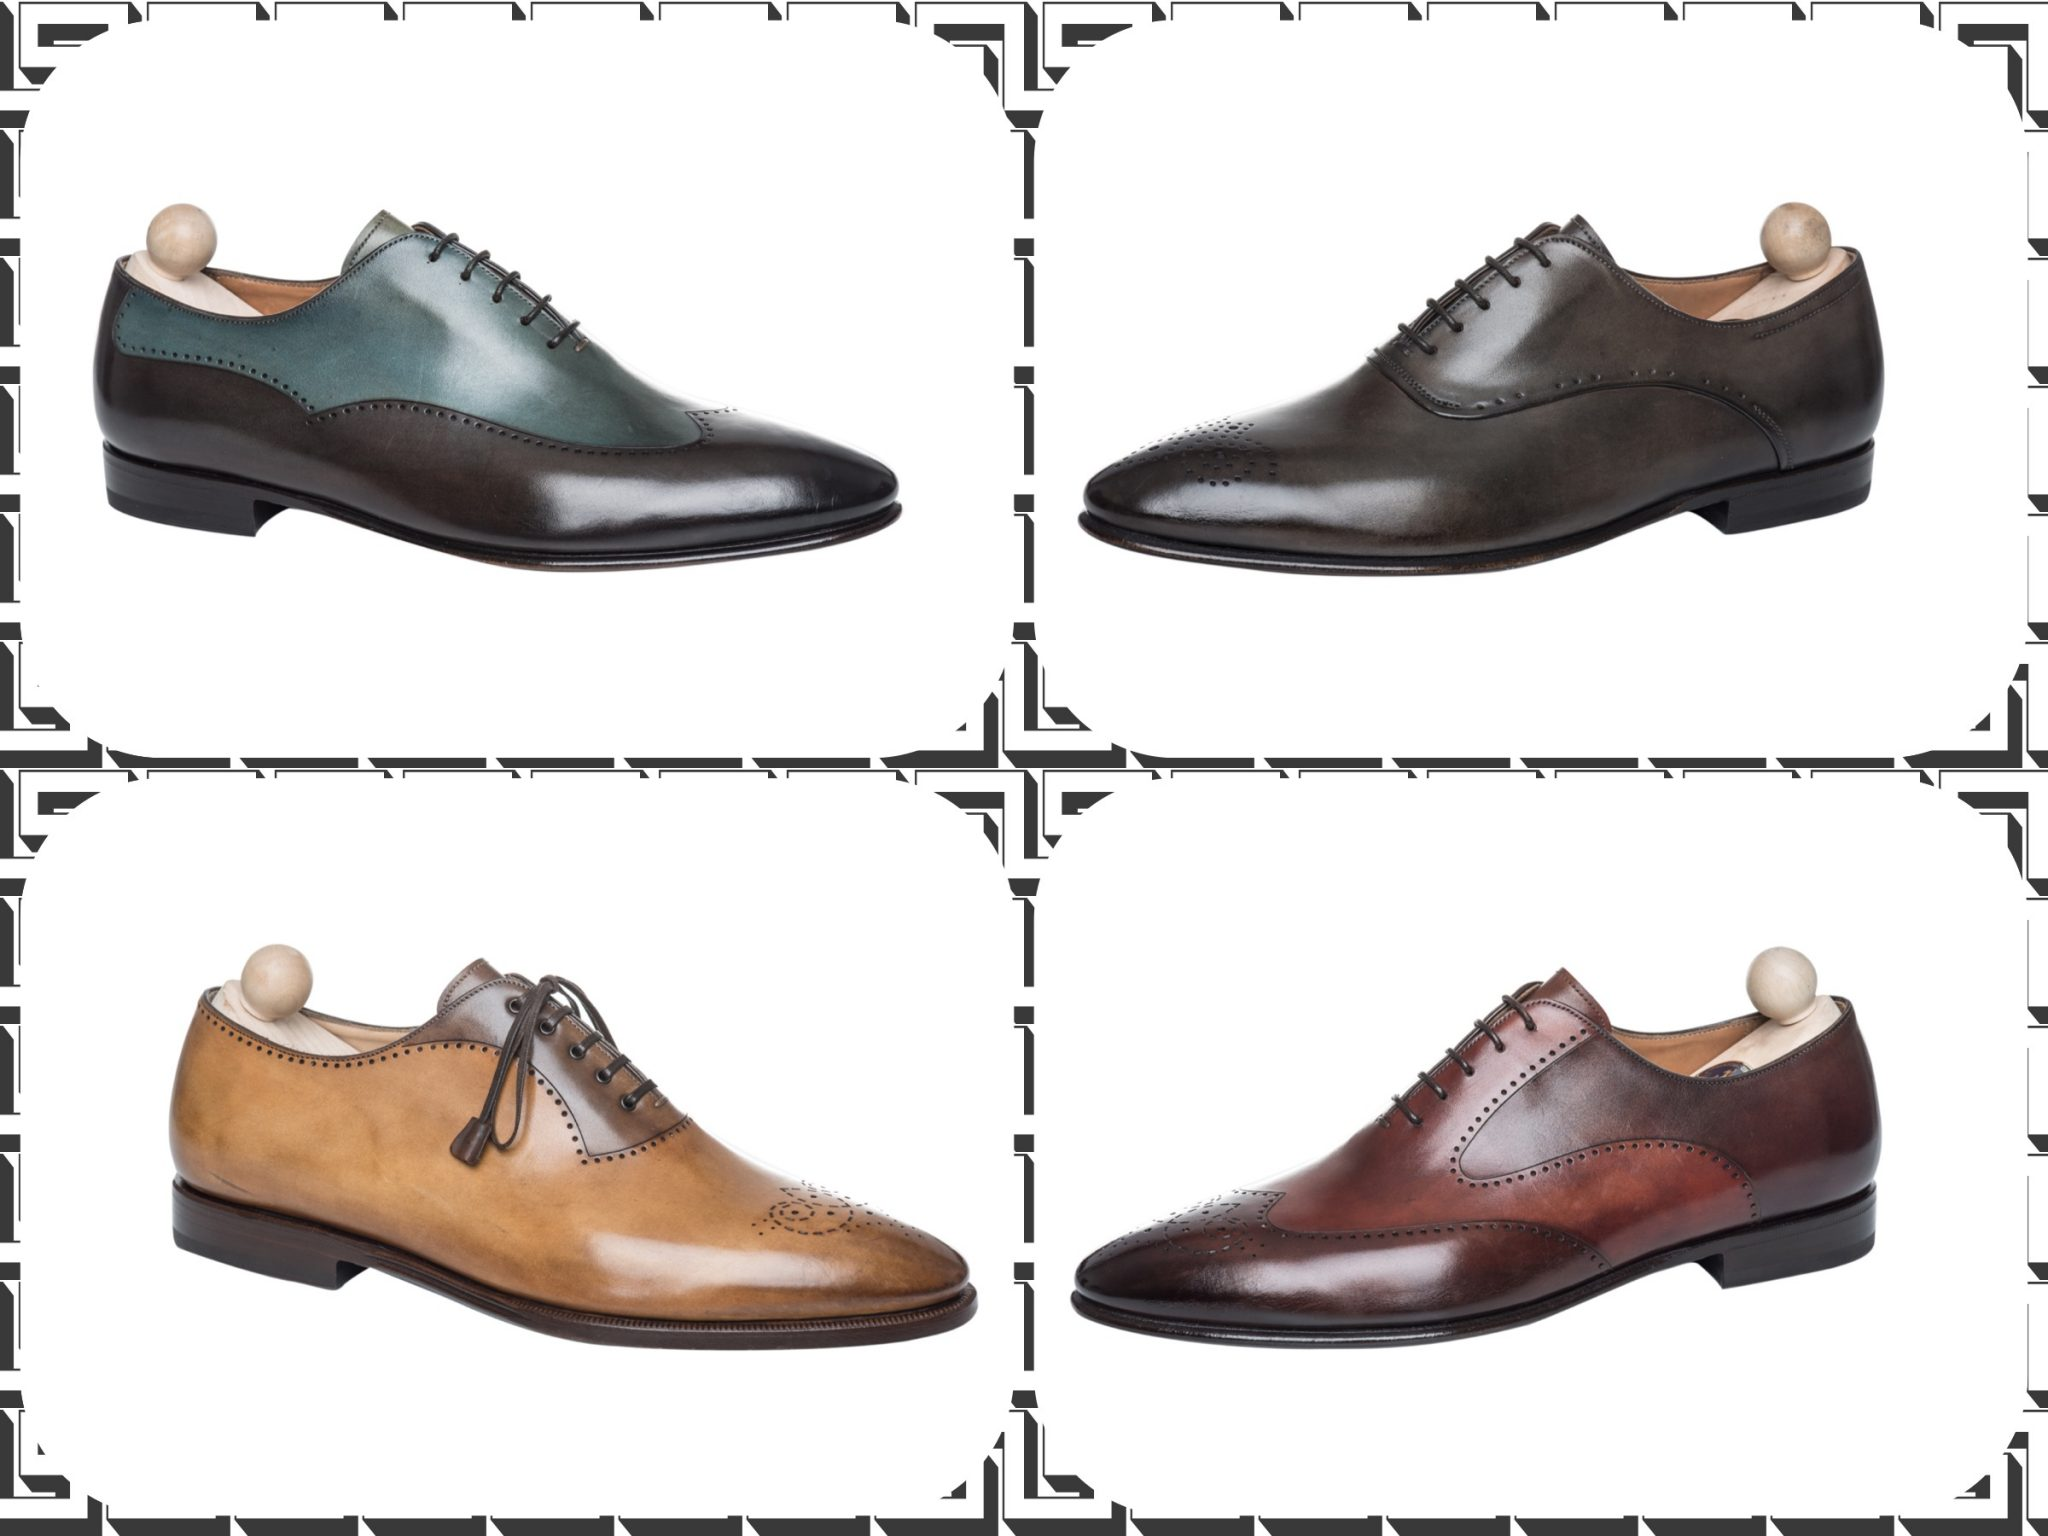 SS2013 Luxury Handpainted Lace-up Shoes by Franceschetti